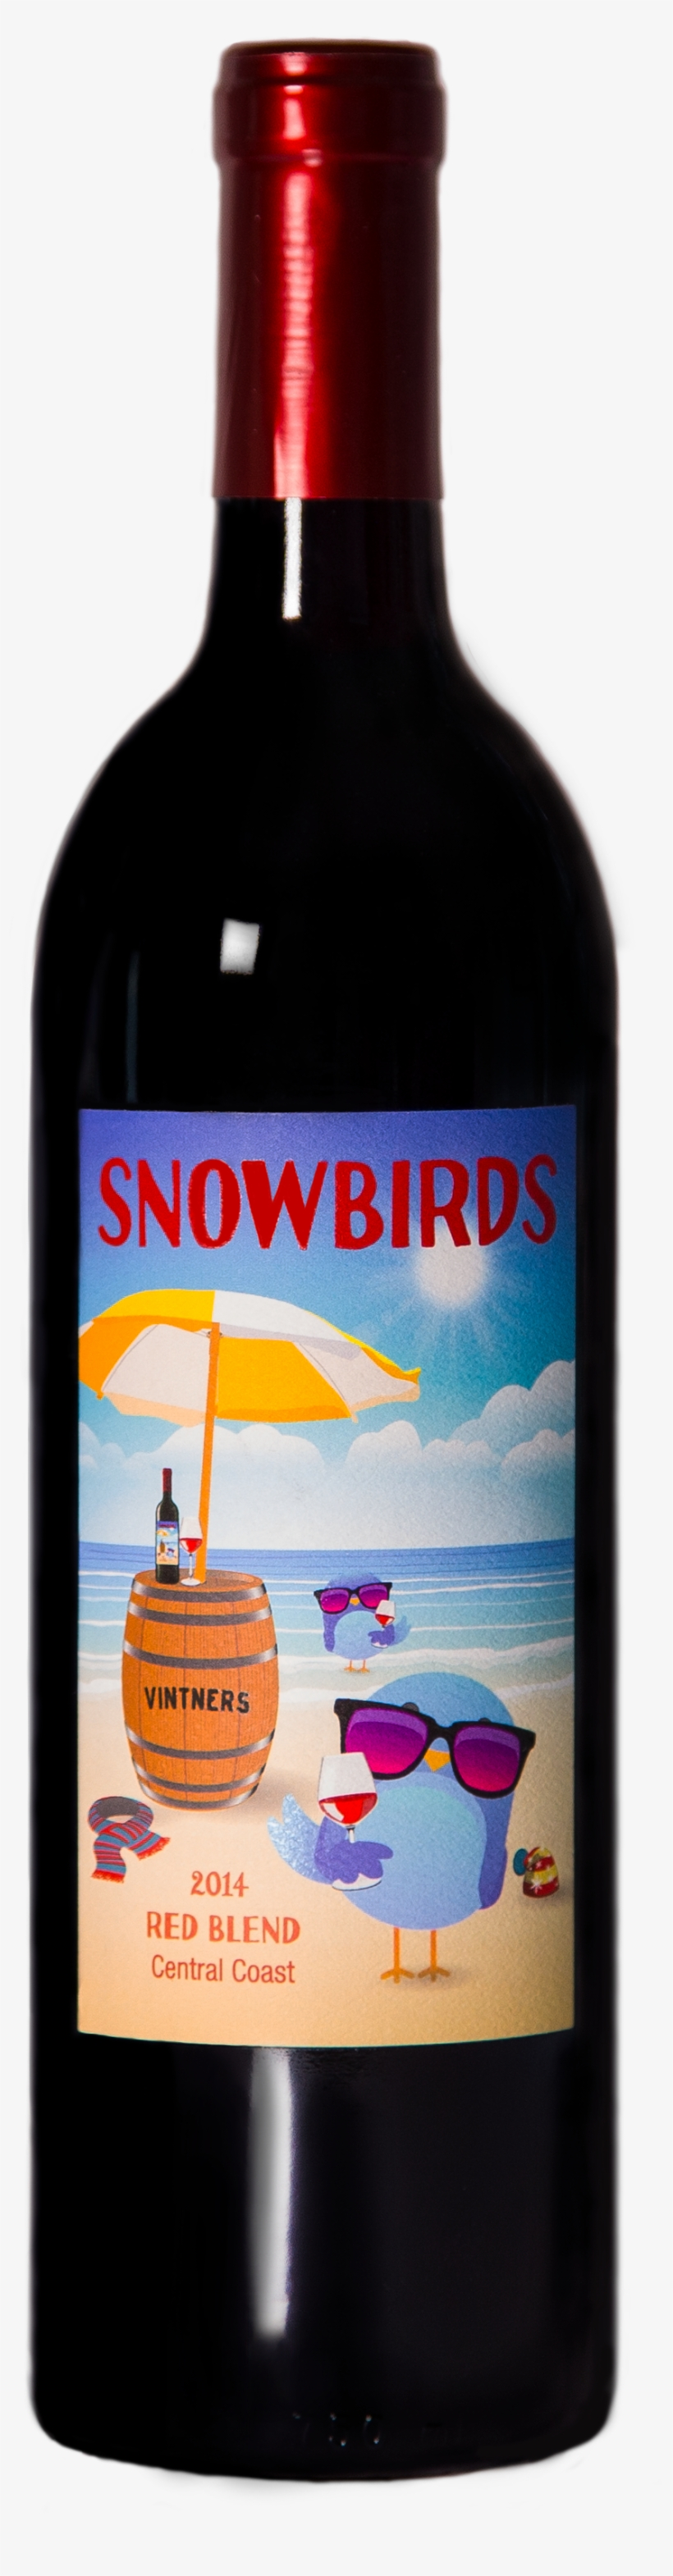 Snowbirds Vintners Will Participate In The Epcot Food - Wine, transparent png #1674690